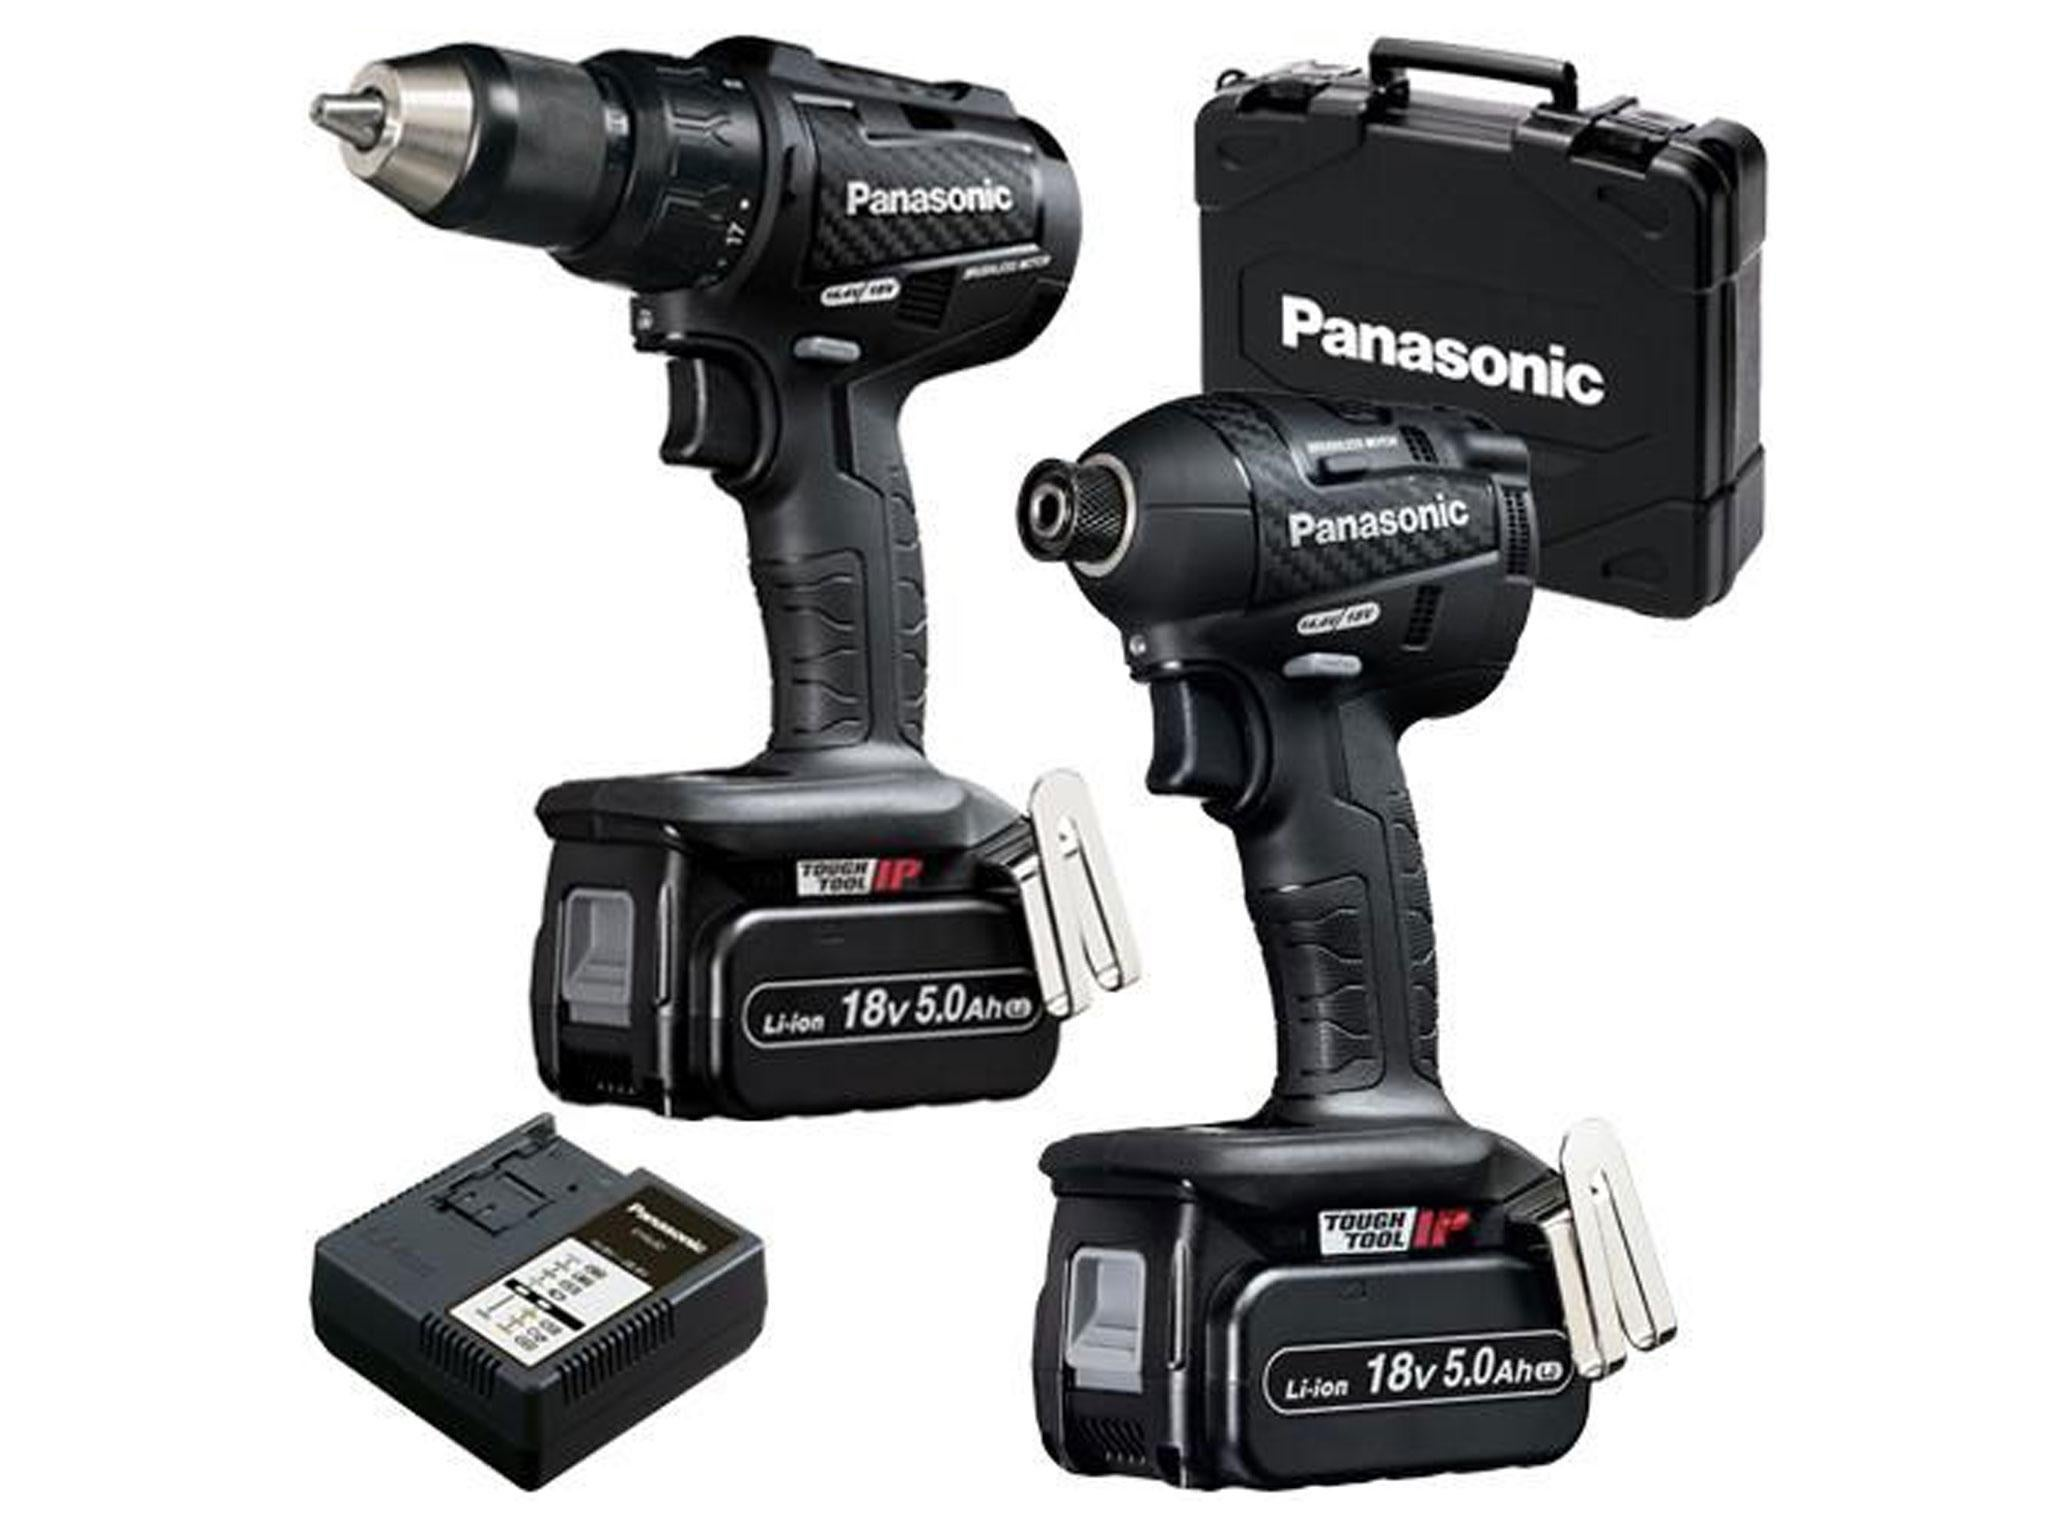 Cordless Drill: reviews, review, rating, advice on choosing 57